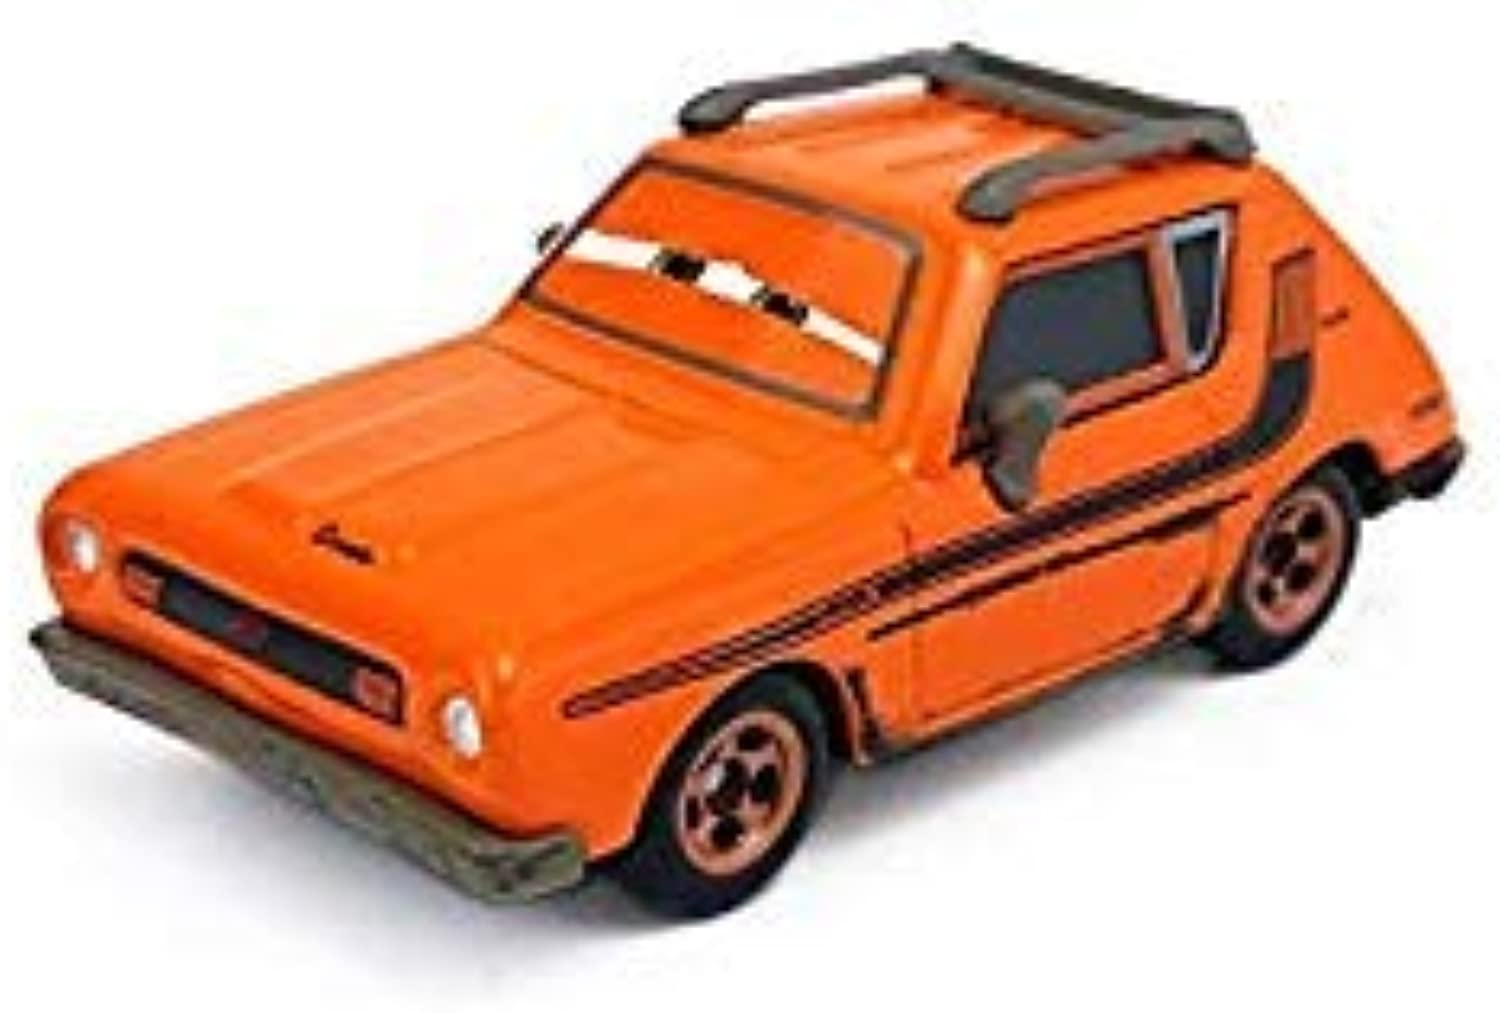 Pixar Cars 2 Grem in Trouble 1 55 Diecast Metal Alloy Toy Car Model Loose Kids Boy Xmas Gift